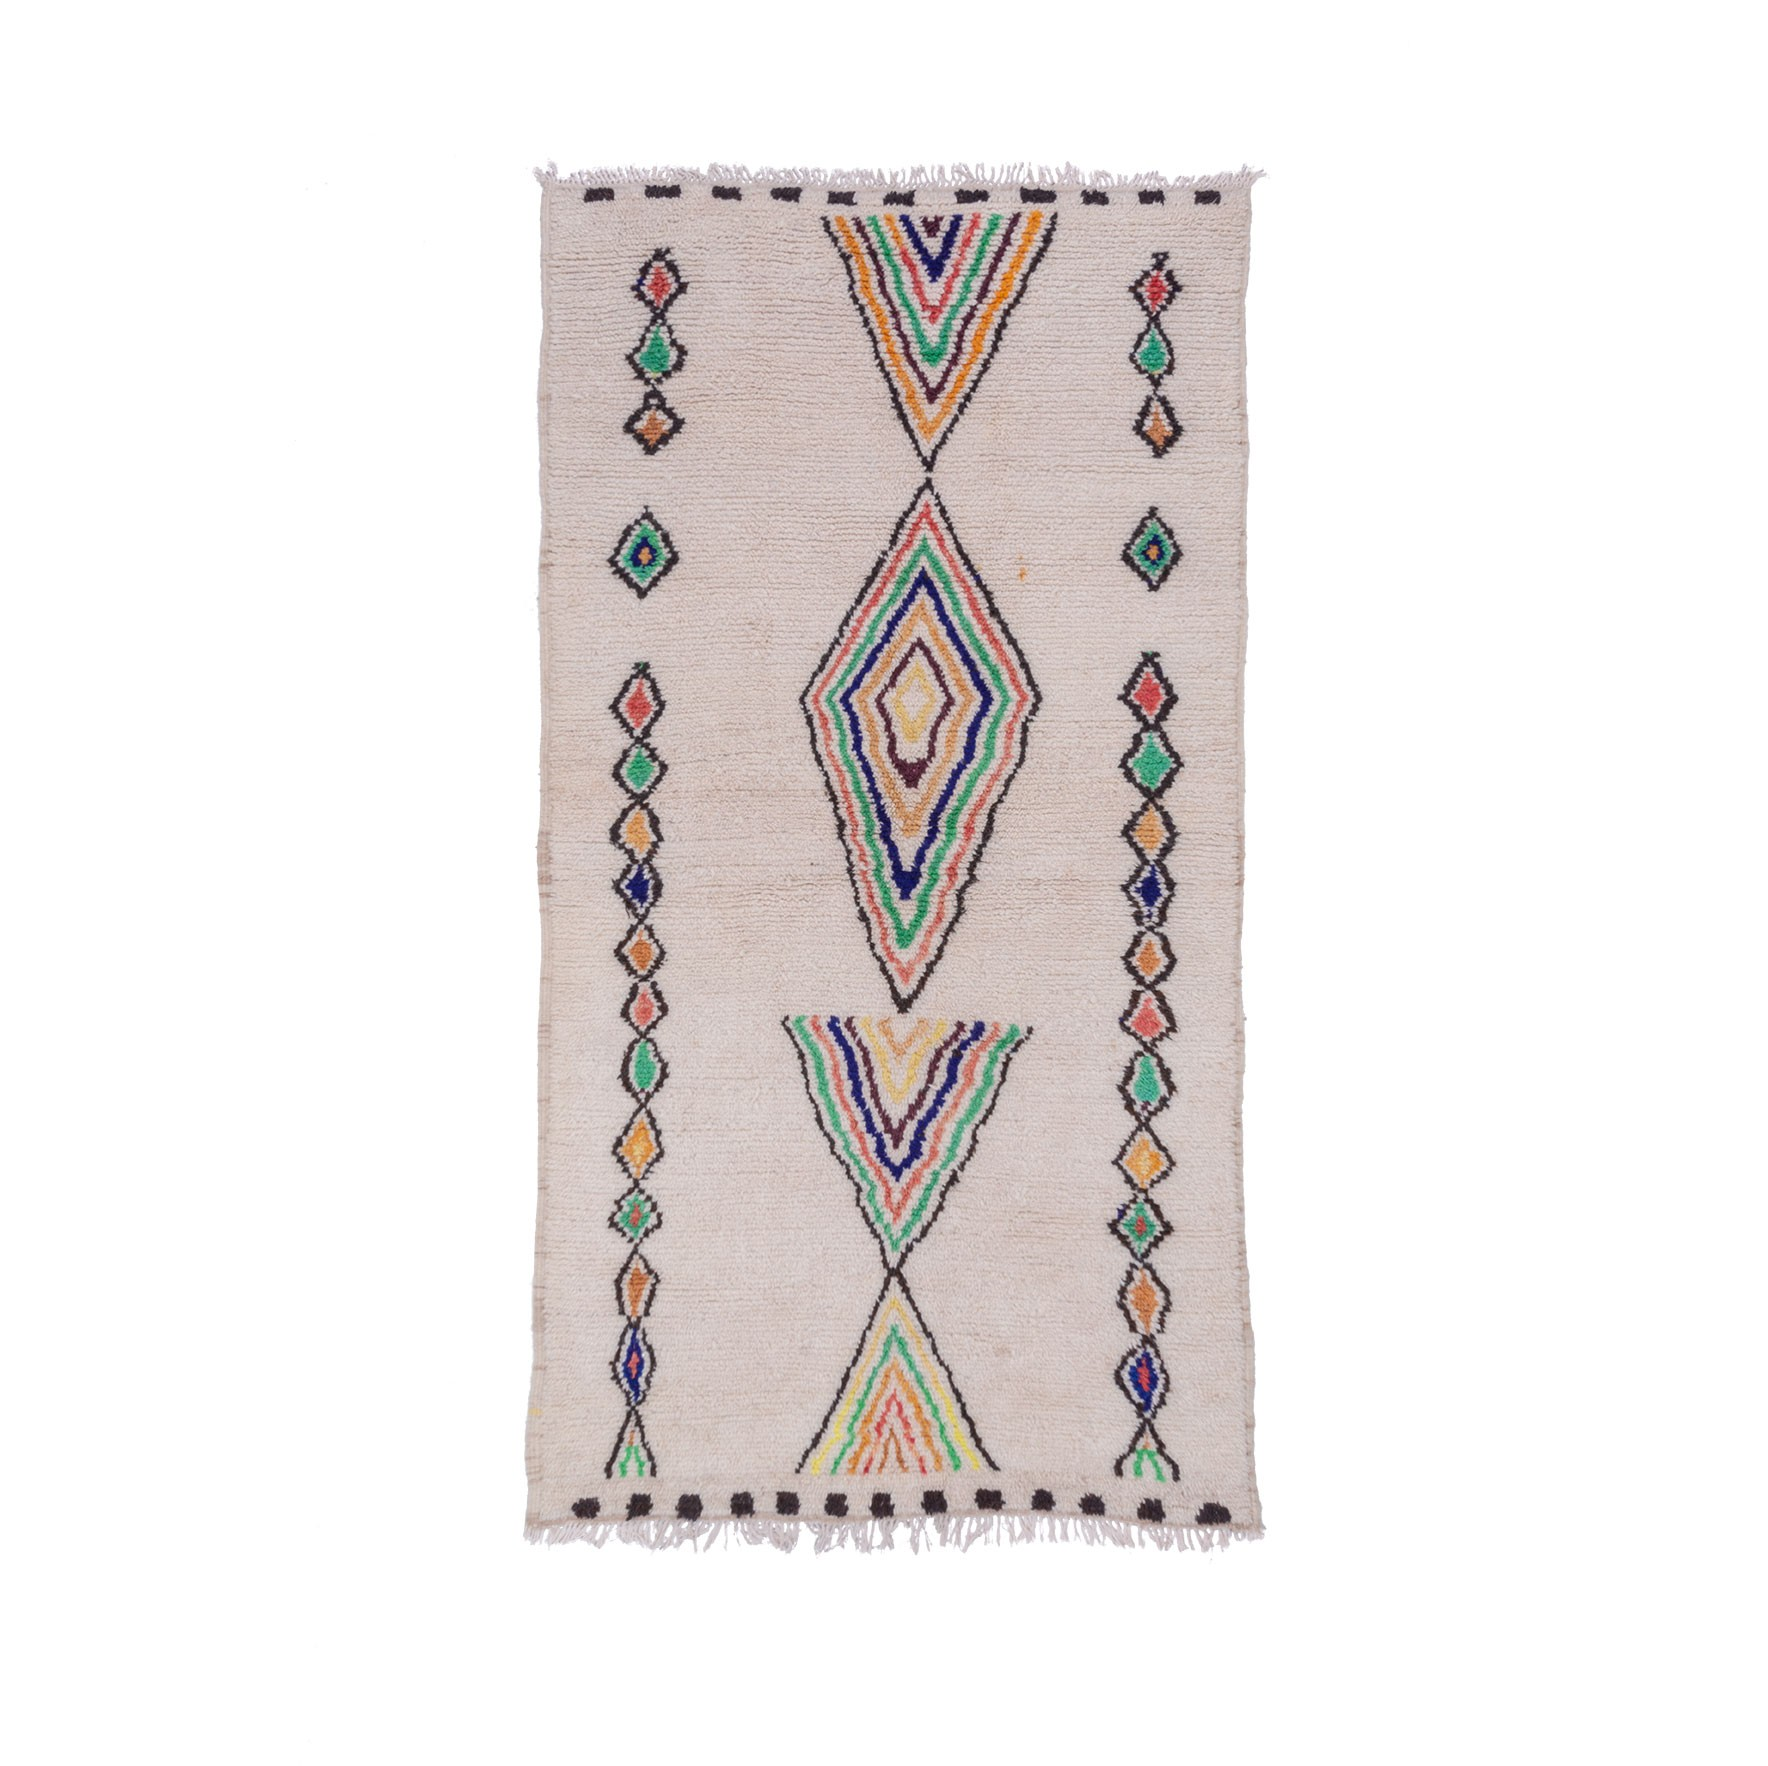 Azilal carpet white background multicolored patterns